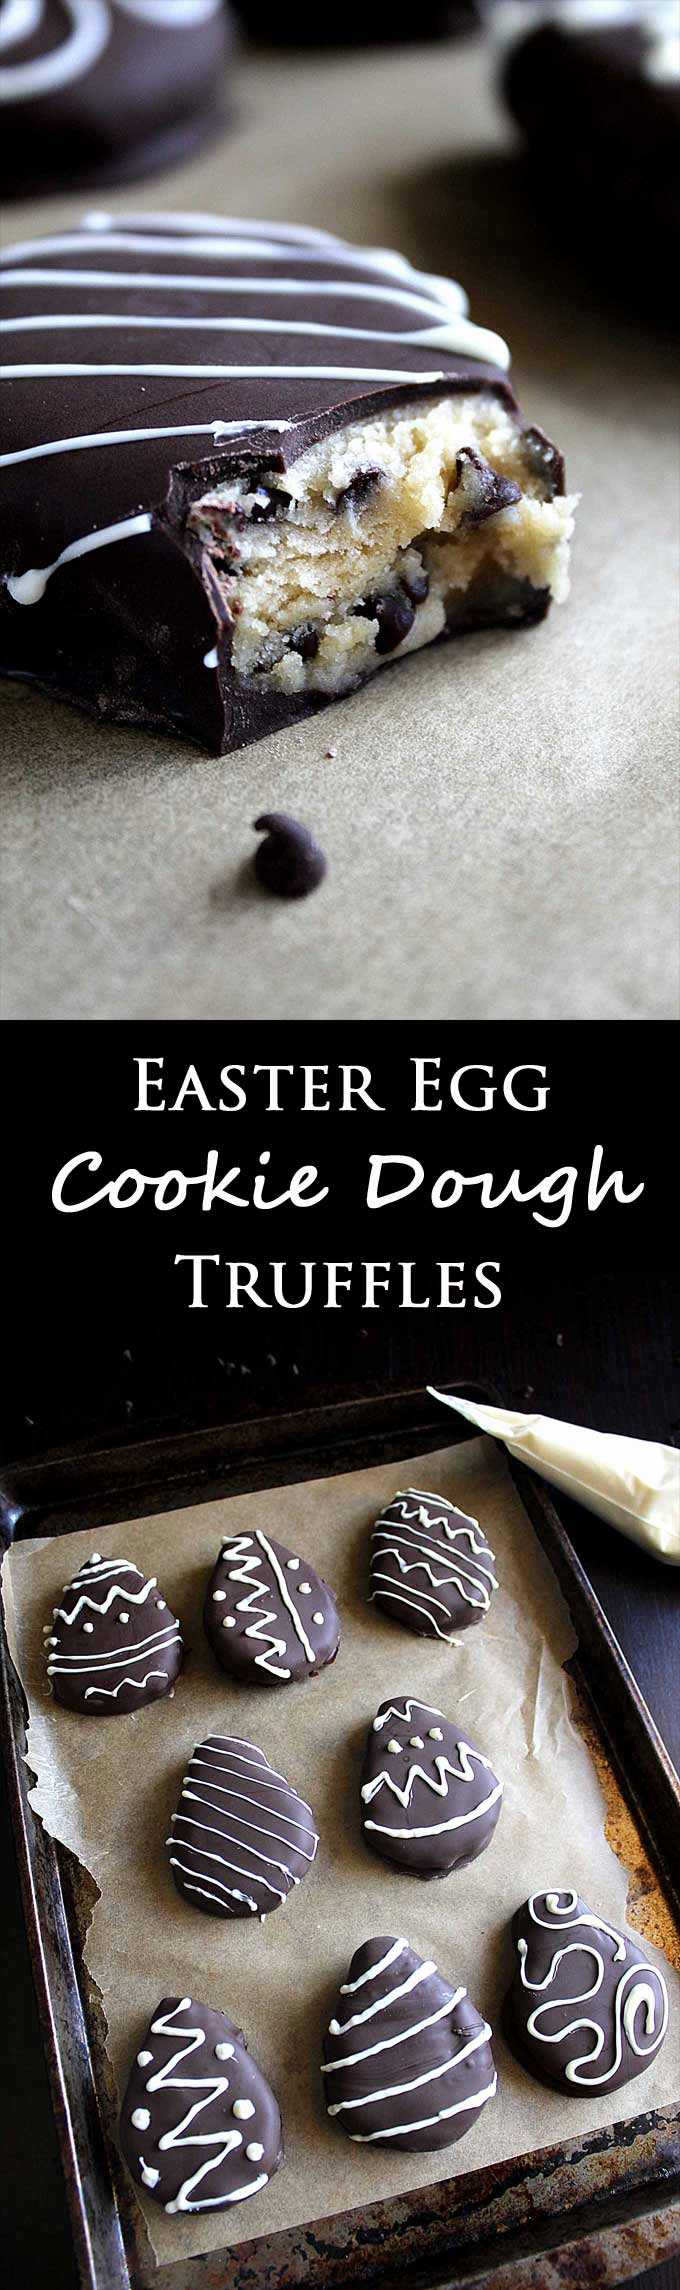 Chocolate Chip Cookie Dough Truffles | Edible Eggless Cookie Dough | Safe to Eat | Cookie Dough Bites | Chocolate Covered